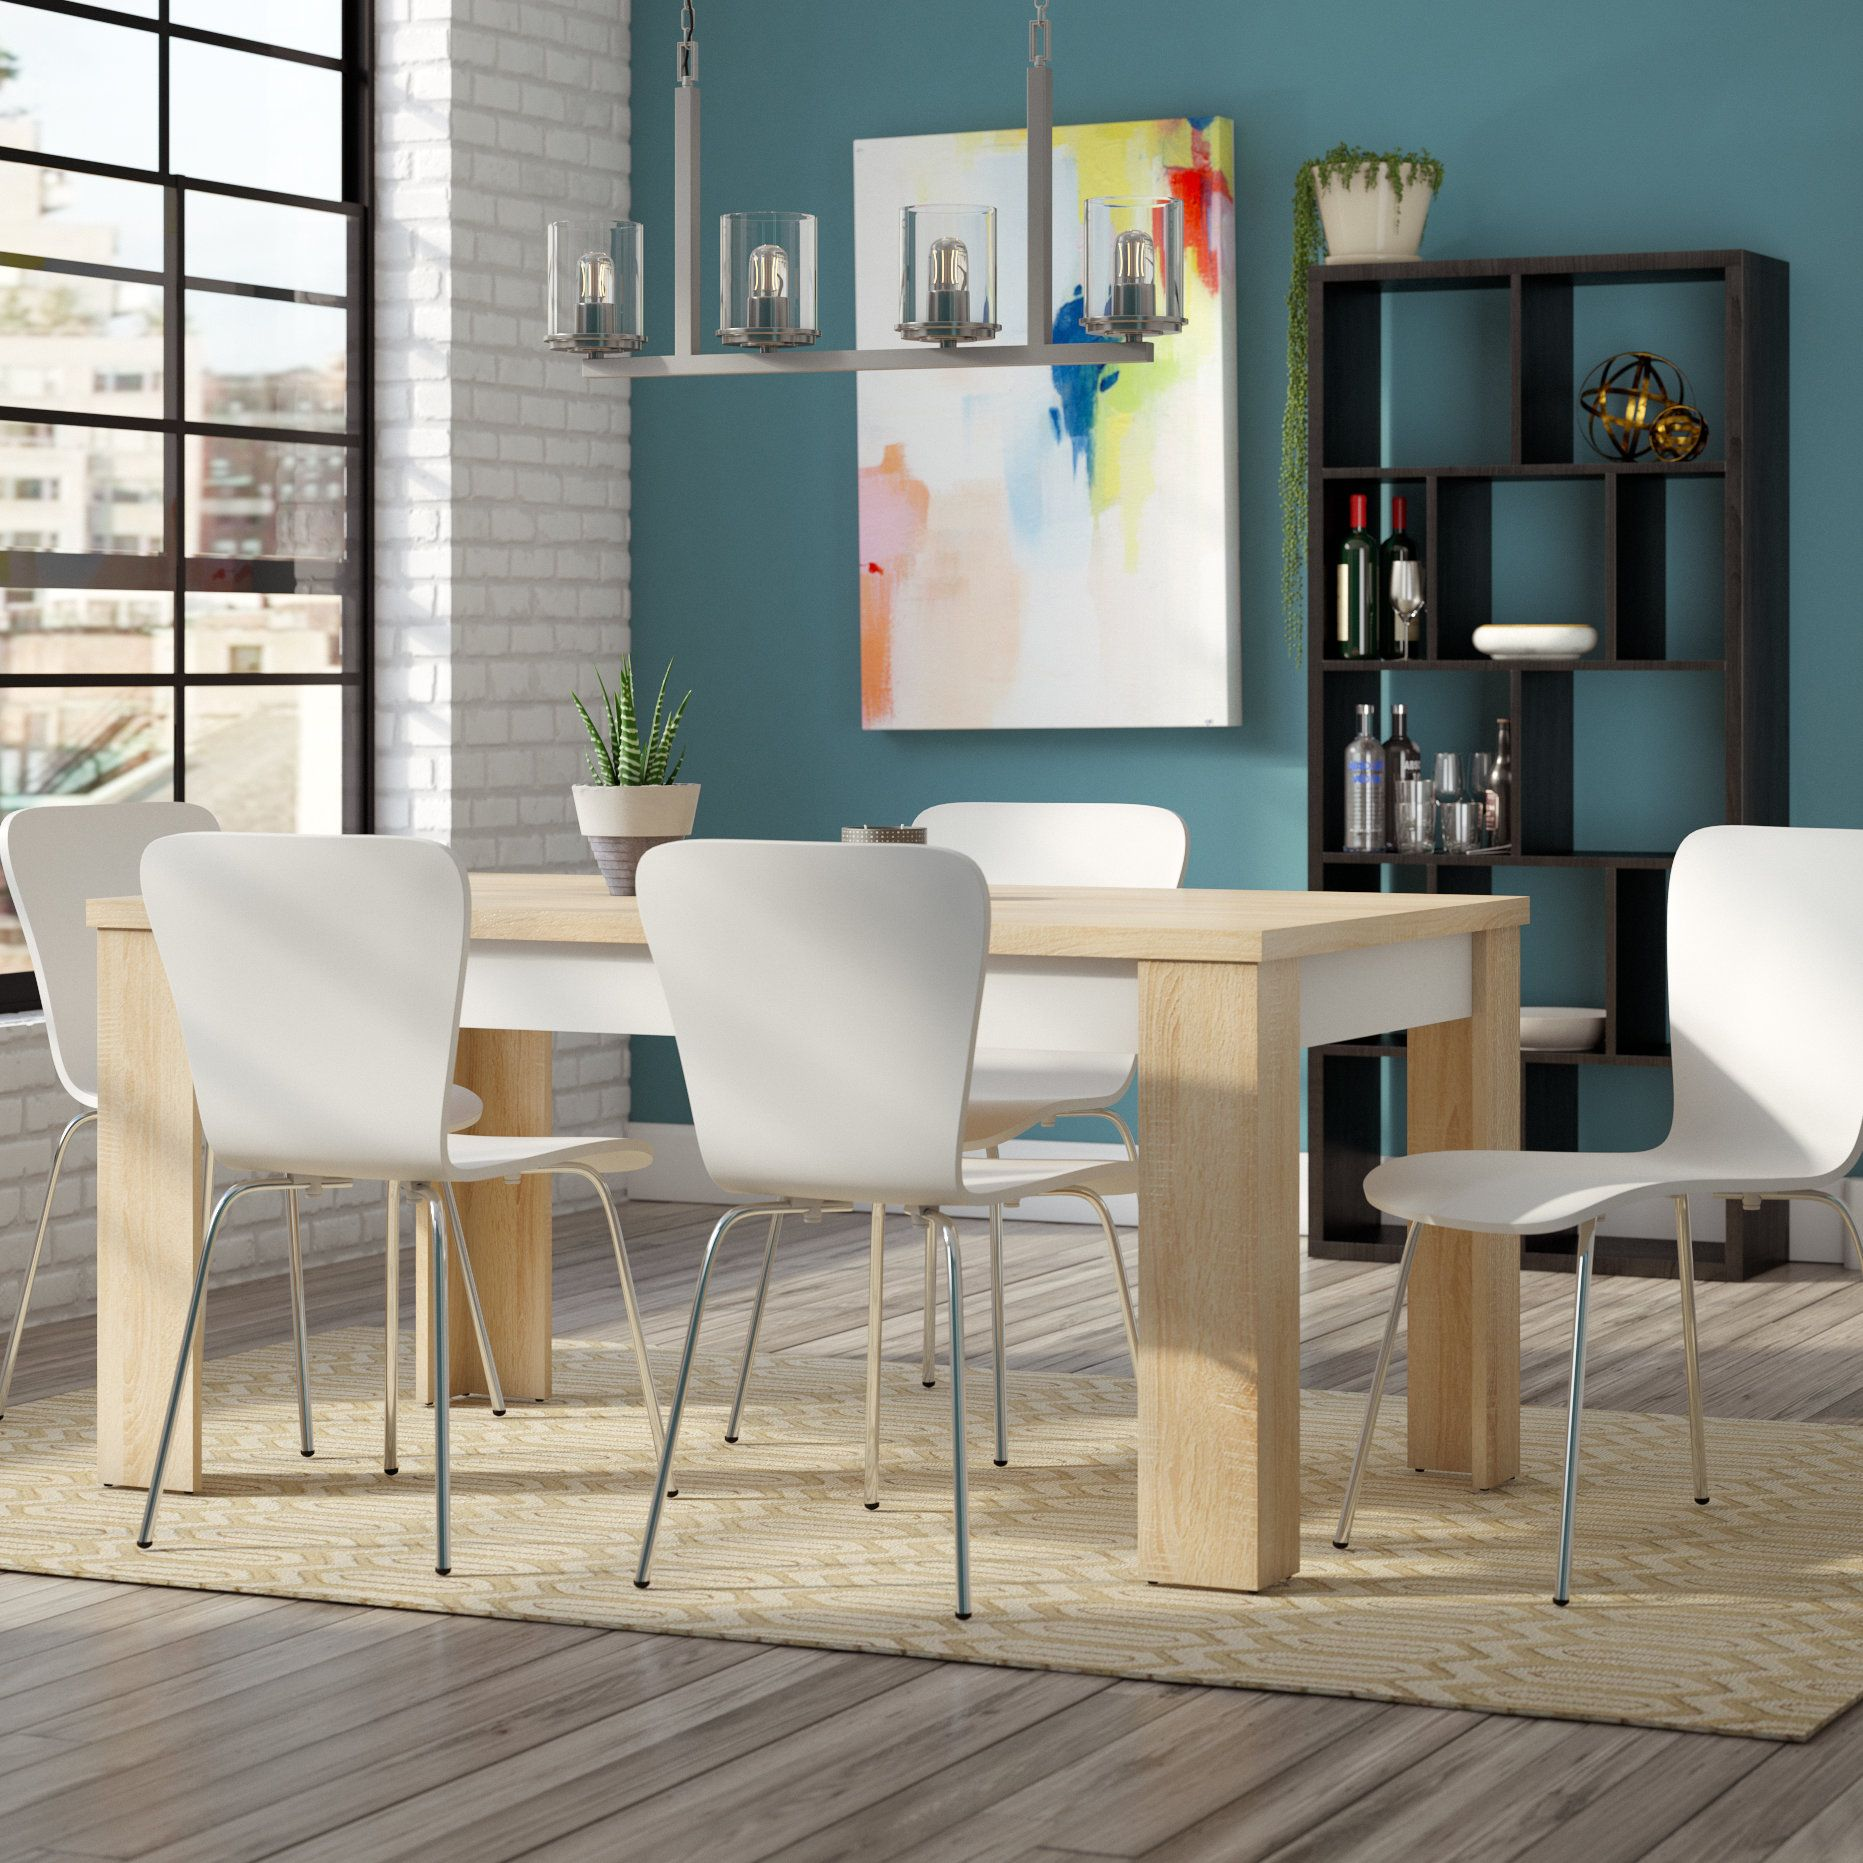 Algedi 7 Piece Dining Set | Products | Pinterest | Products